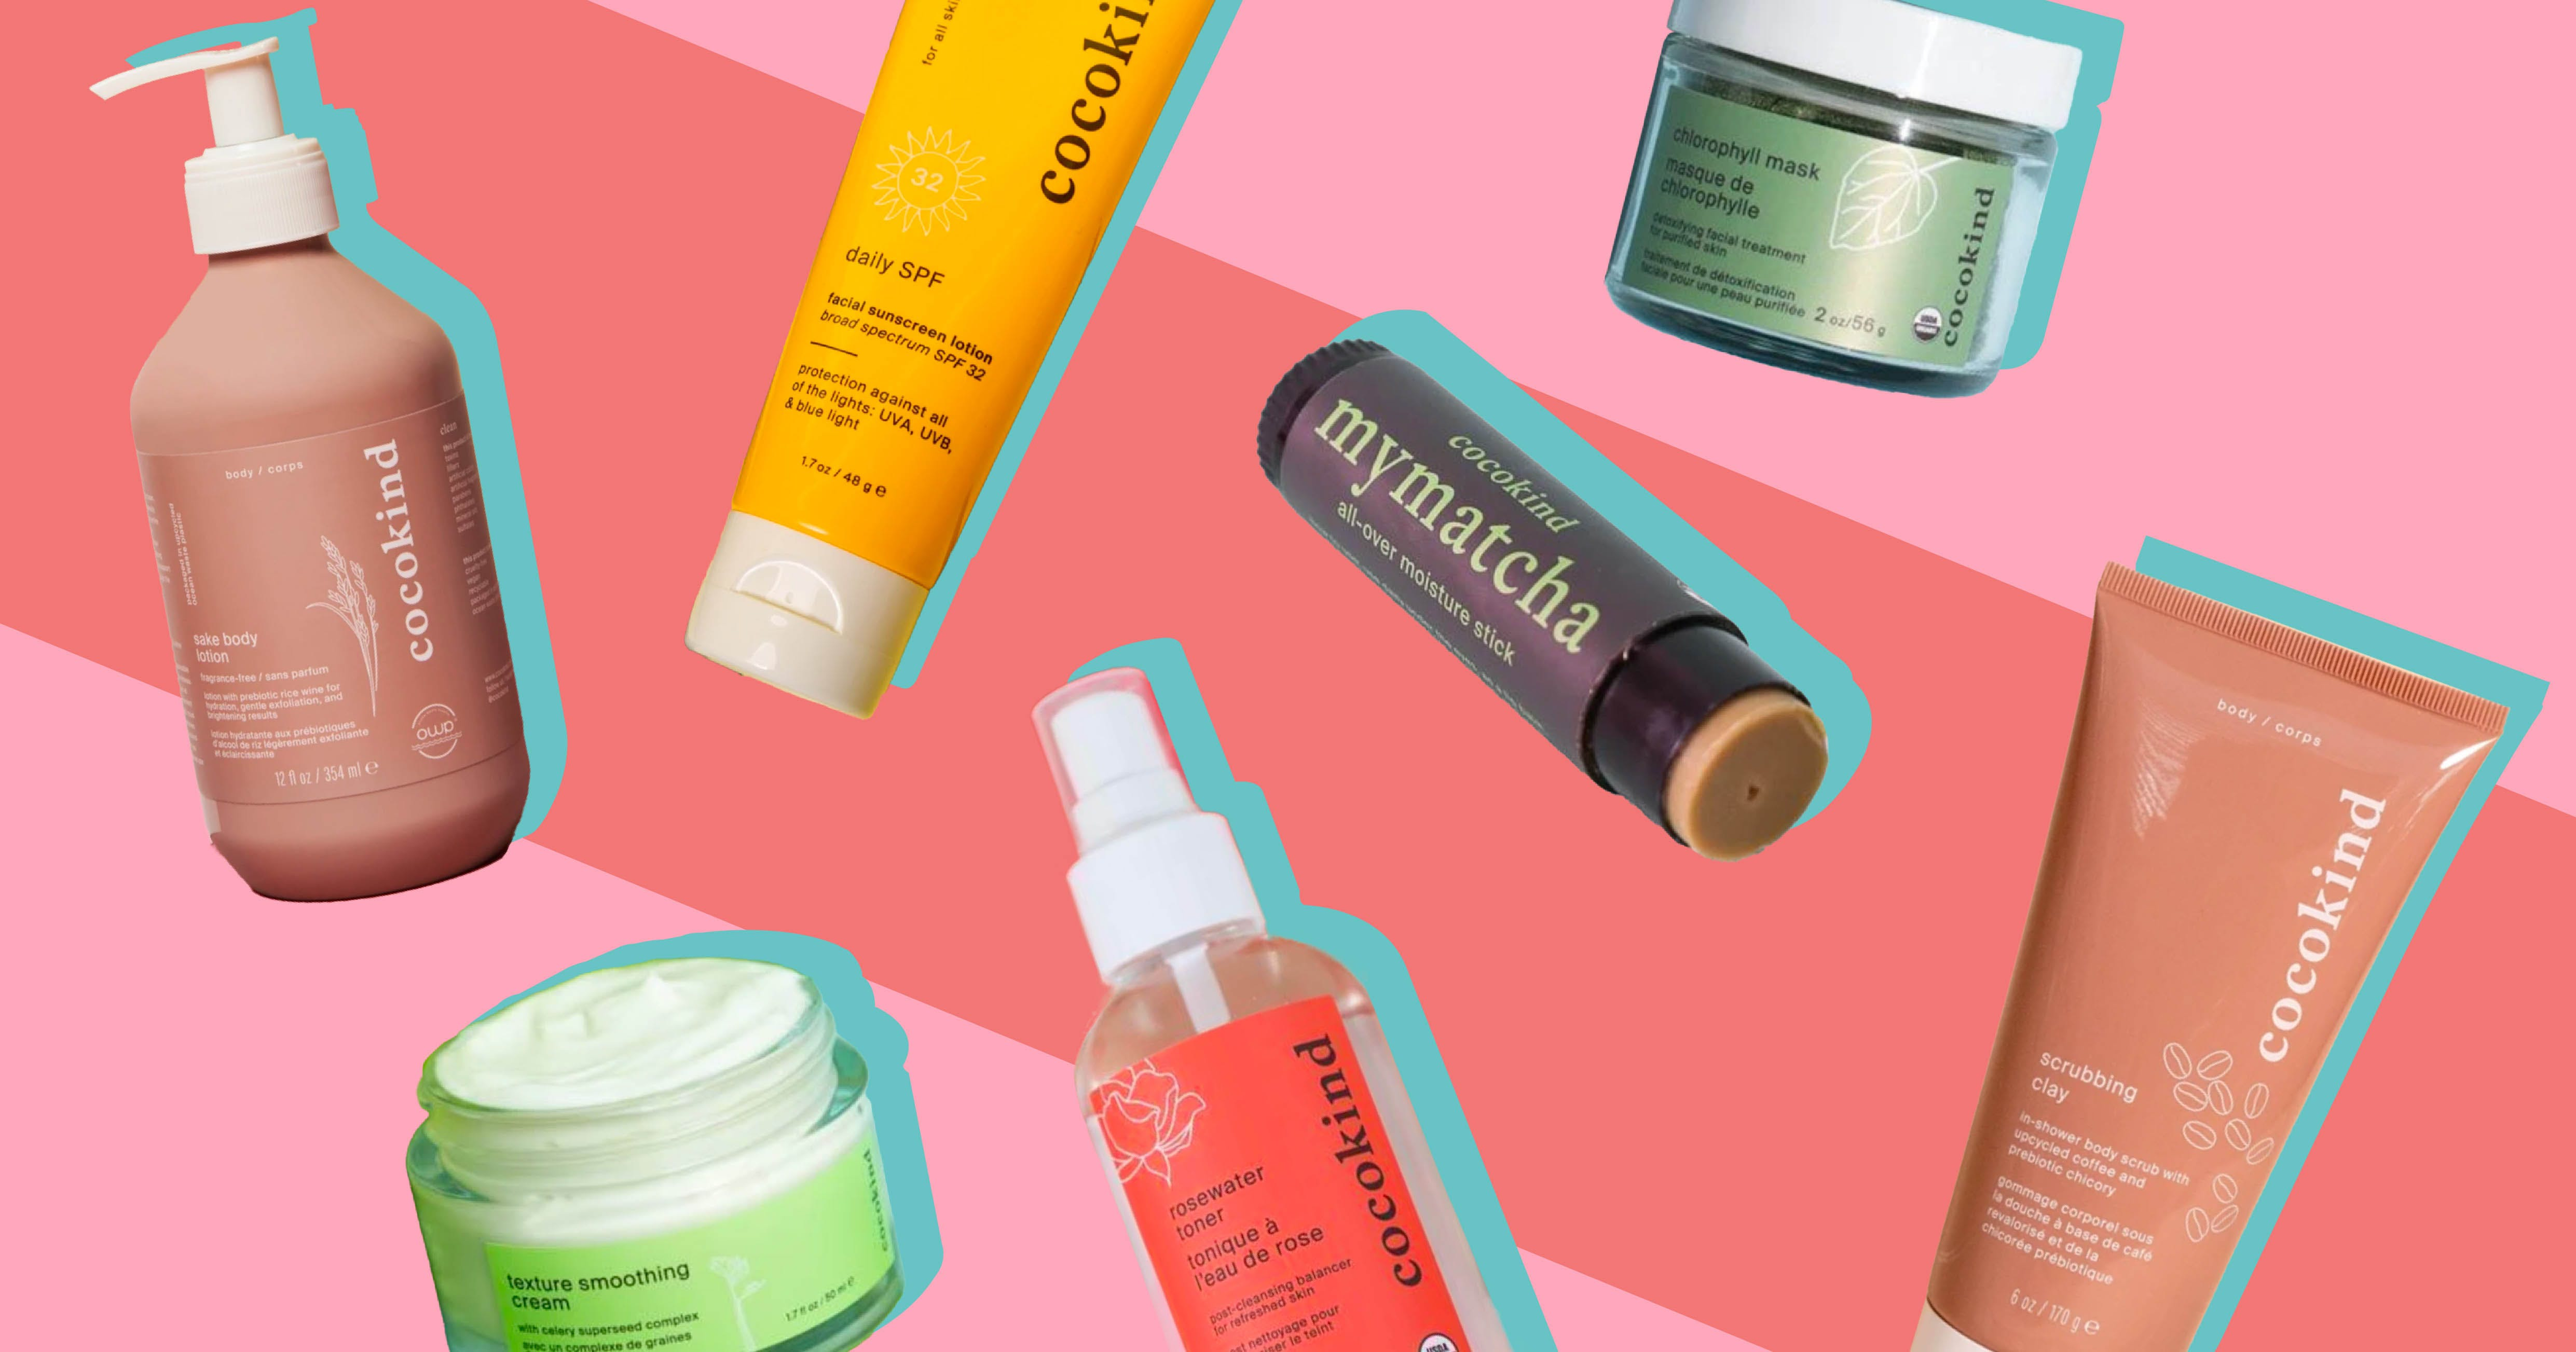 Cocokind Has Become TikTok's New Favorite Beauty Line. Here Are Their Top Sellers